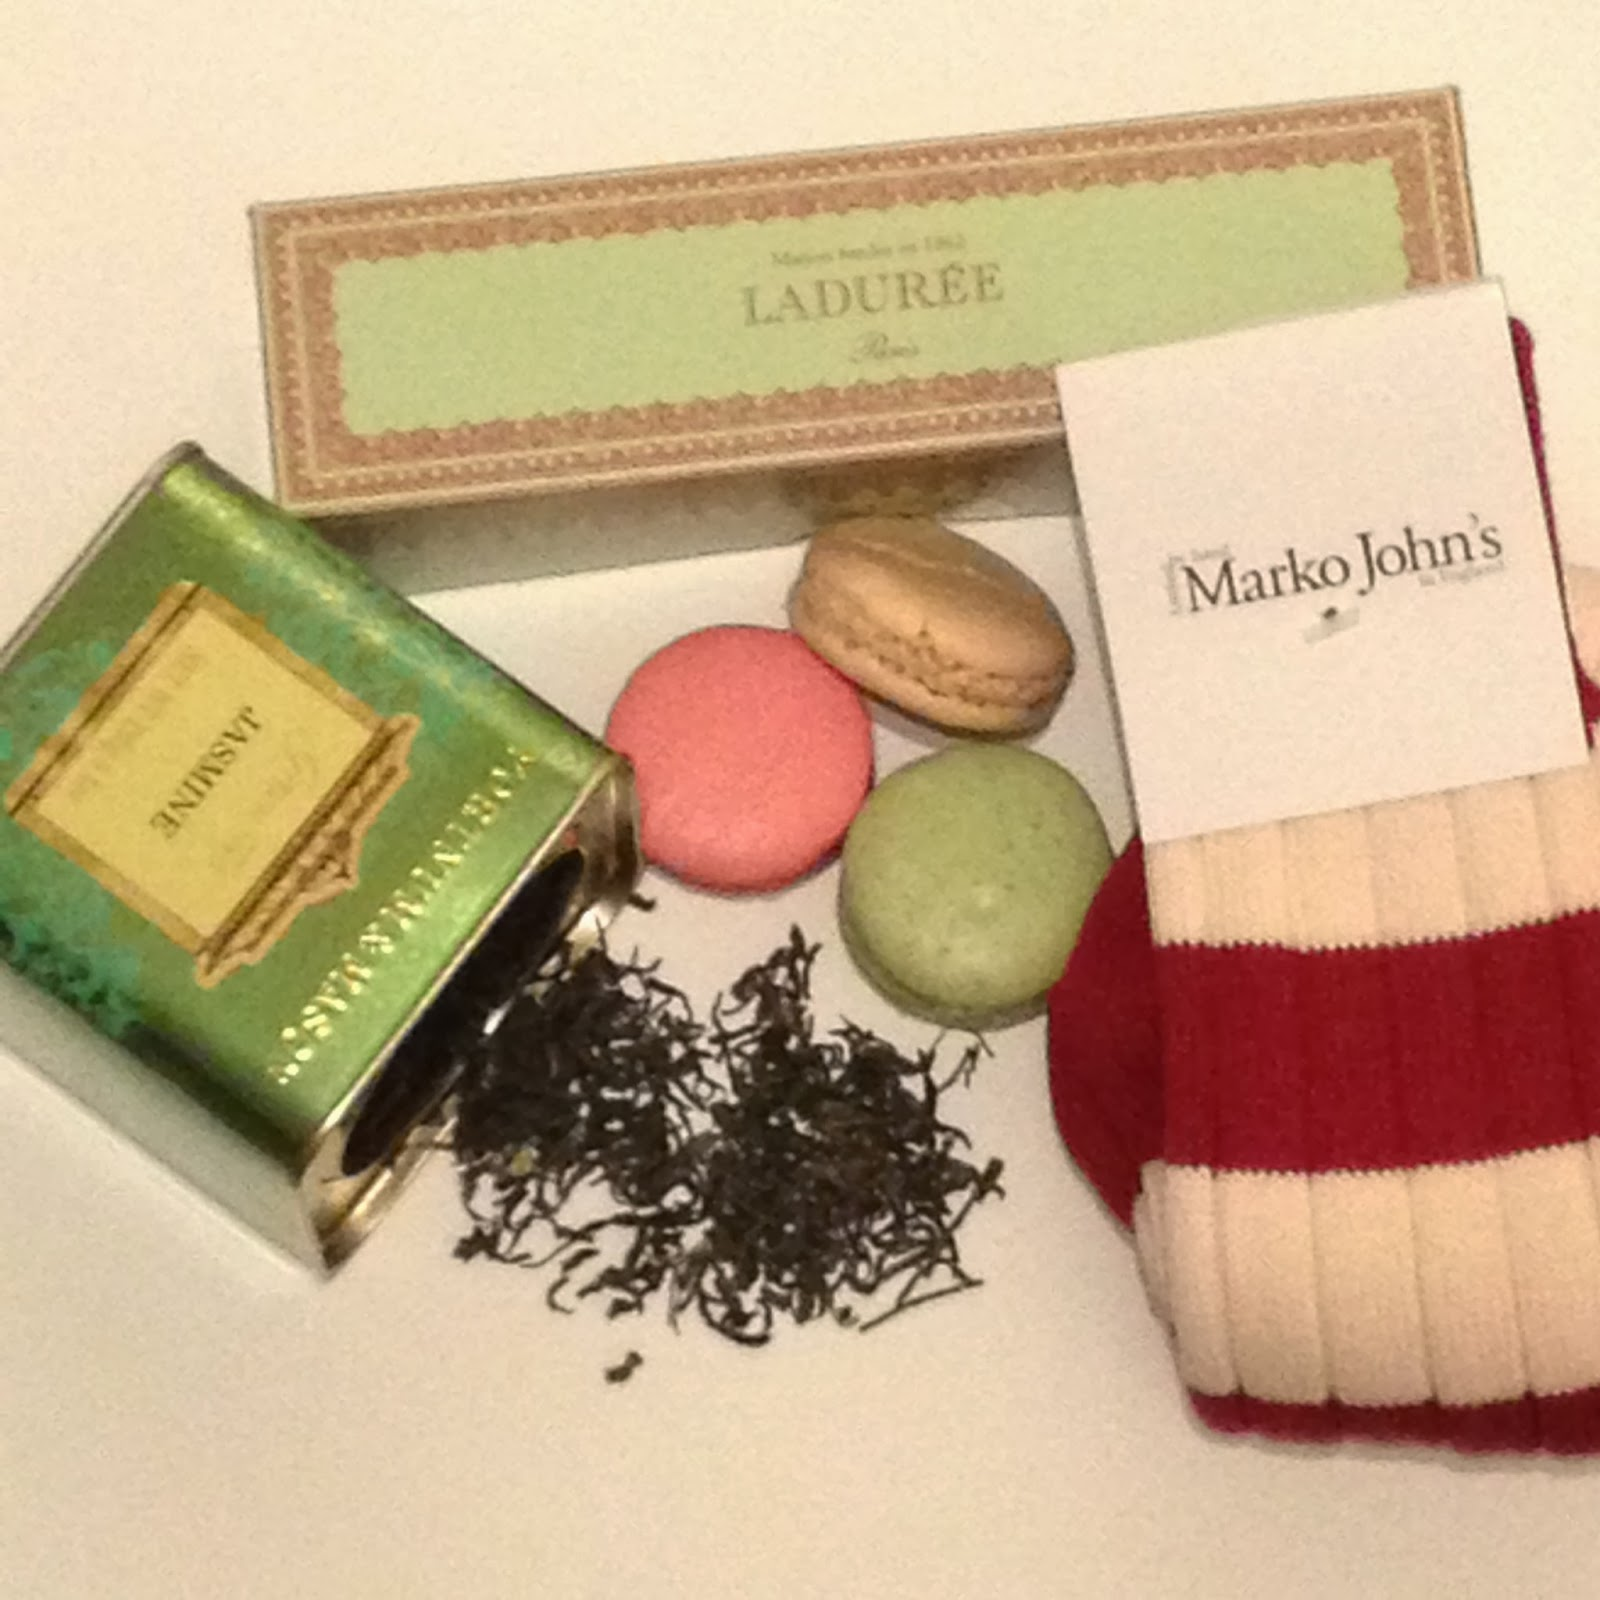 macaroons, laduree, laduree paris, laduree macaroons, laduree harrods, fortnum and mason, fortnum and mason tea, jasmin tea, loose tea, fortnum and mason loose tea, marko johns socks, marko john's socks, marko john's striped socks, woolie socks, striped socks